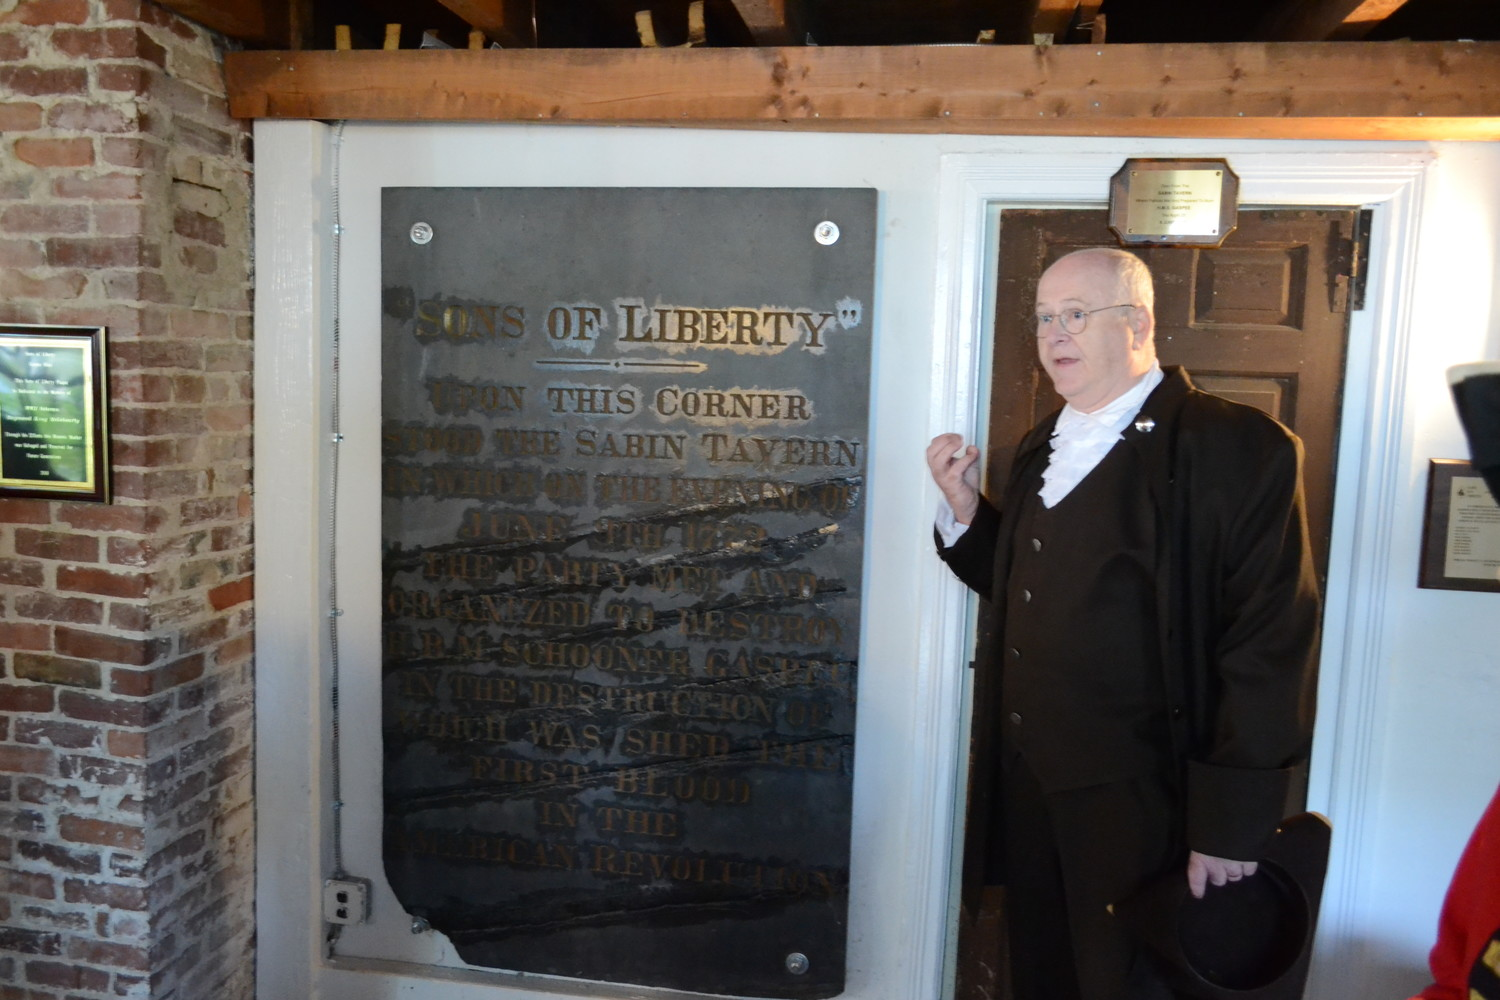 A CLEAN (OLD) SLATE: Dr. John Concannon, historian for the Gaspee Days Committee, speaks about the history of the Sons of Liberty in front of the plaque that has the organization inscribed upon it, illustrating that the revolutionary group had a hand in the burning of the Gaspee.